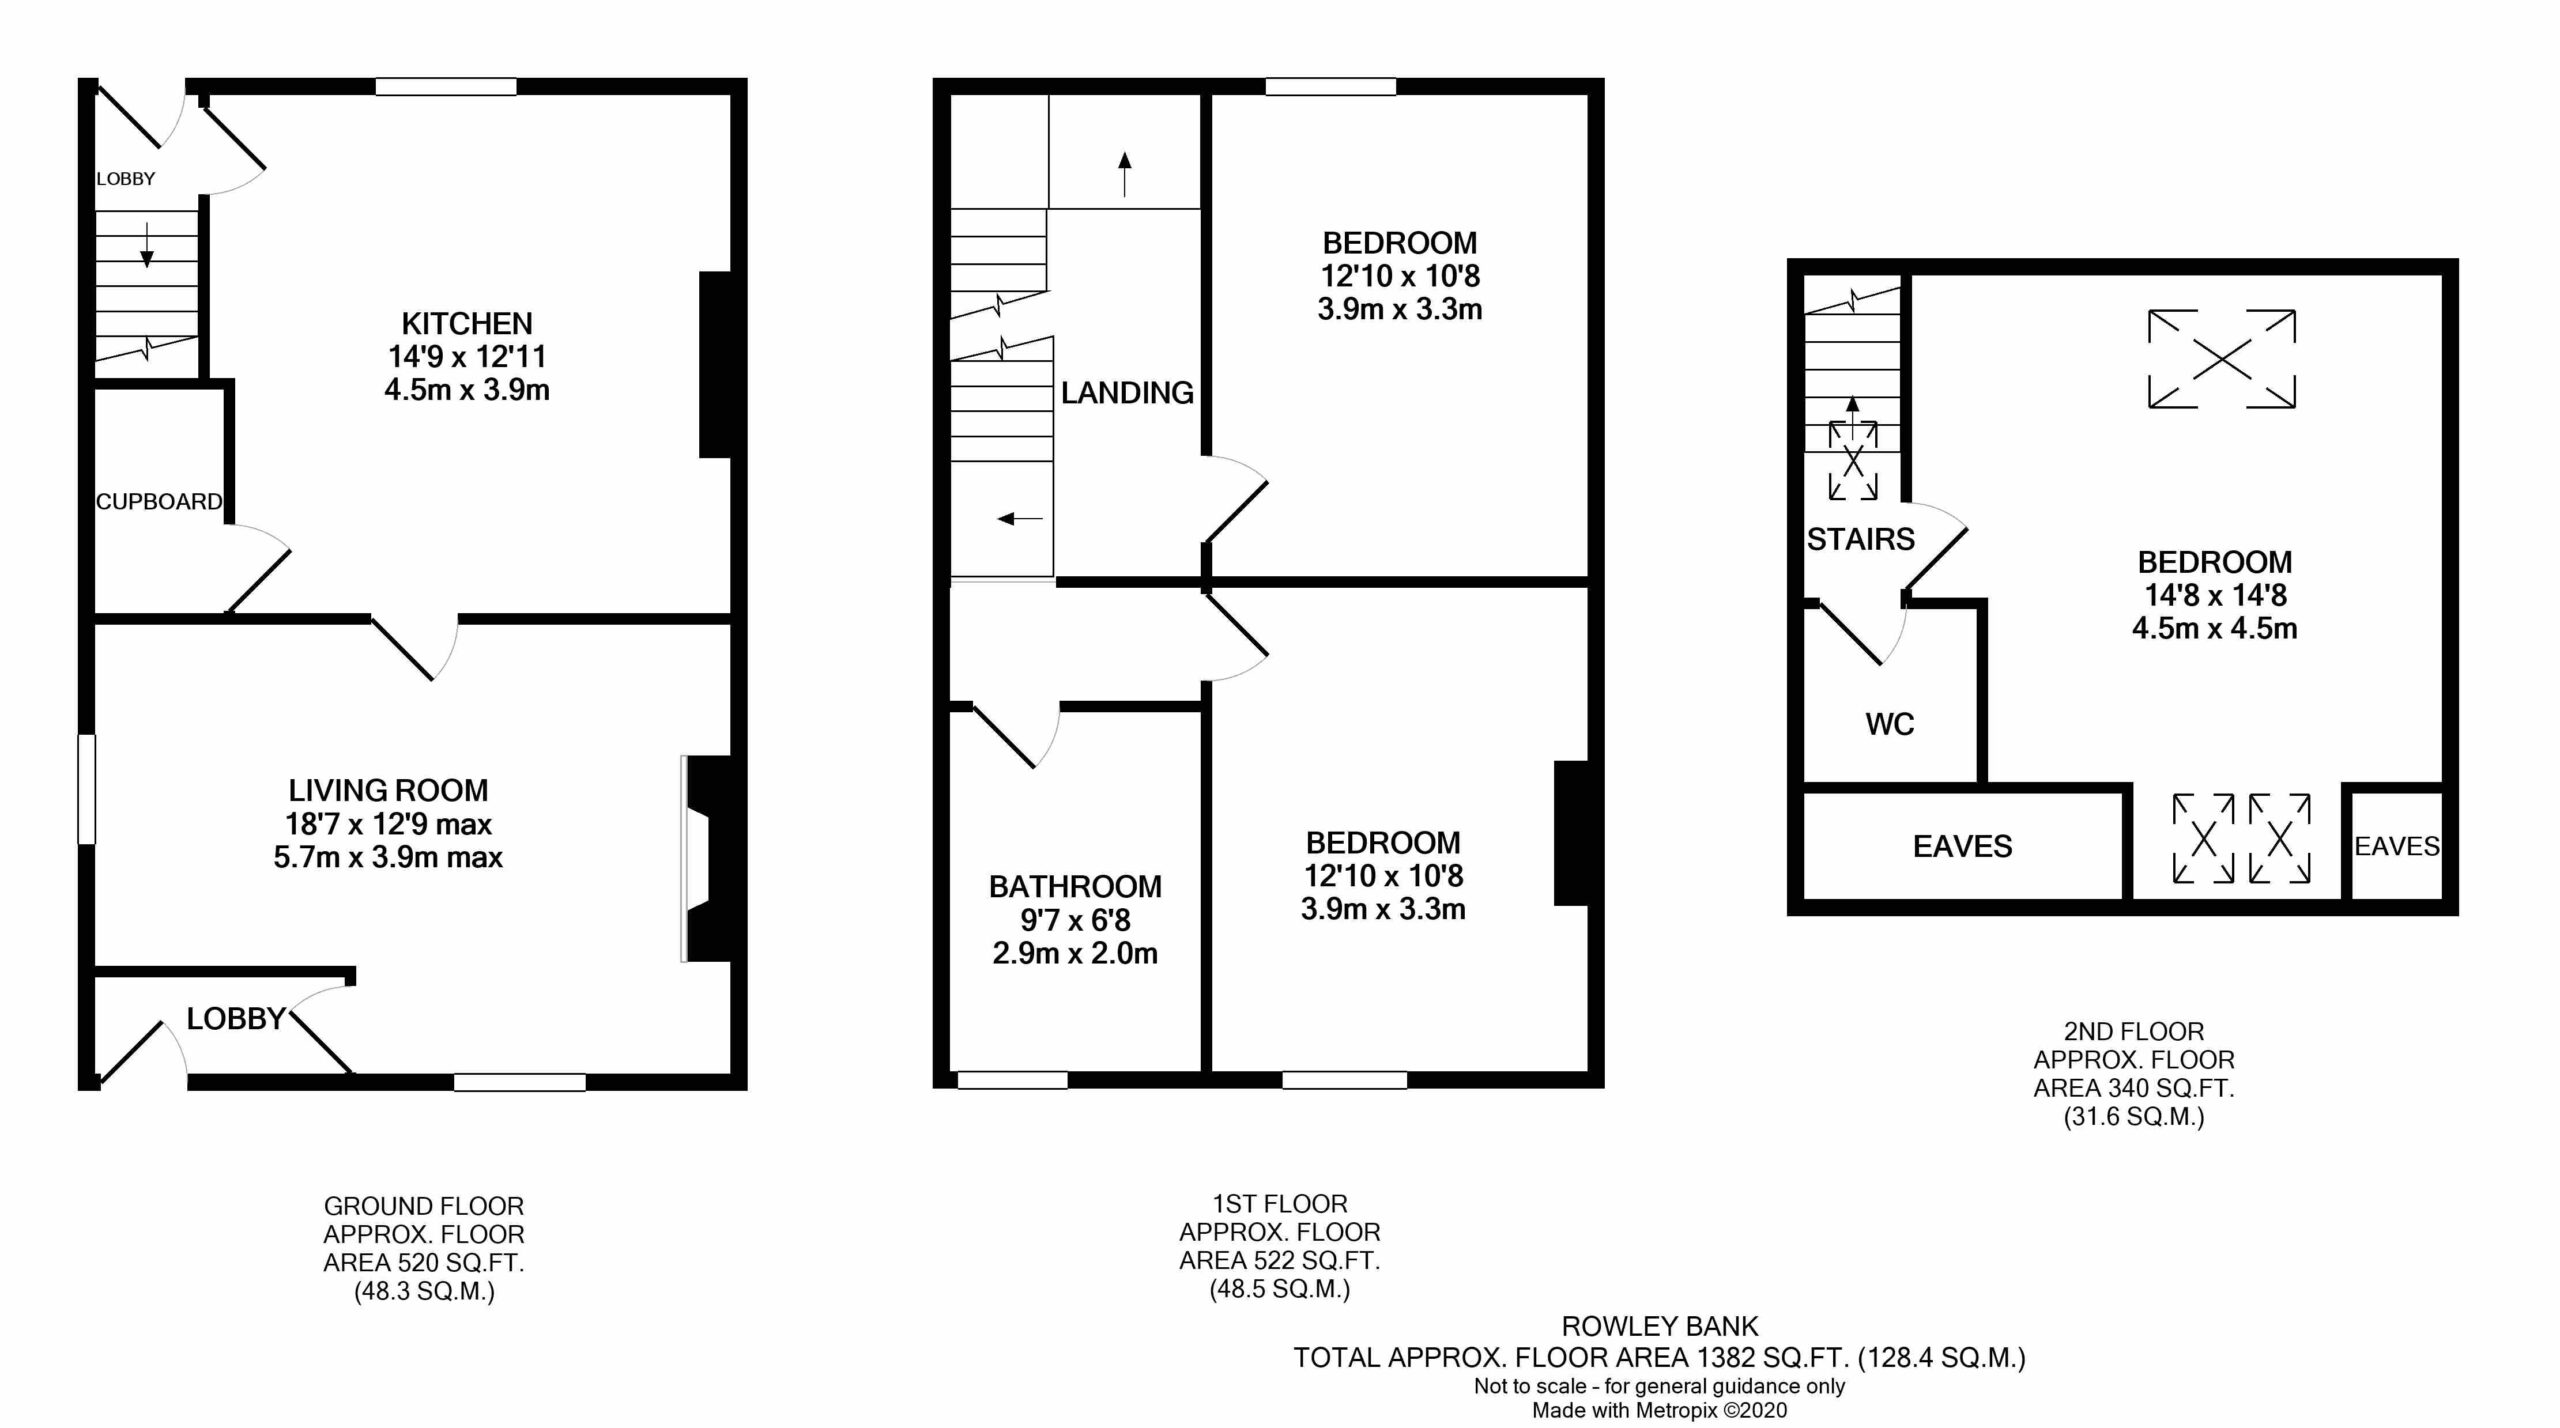 6 Rowley Bank – Floor Plan